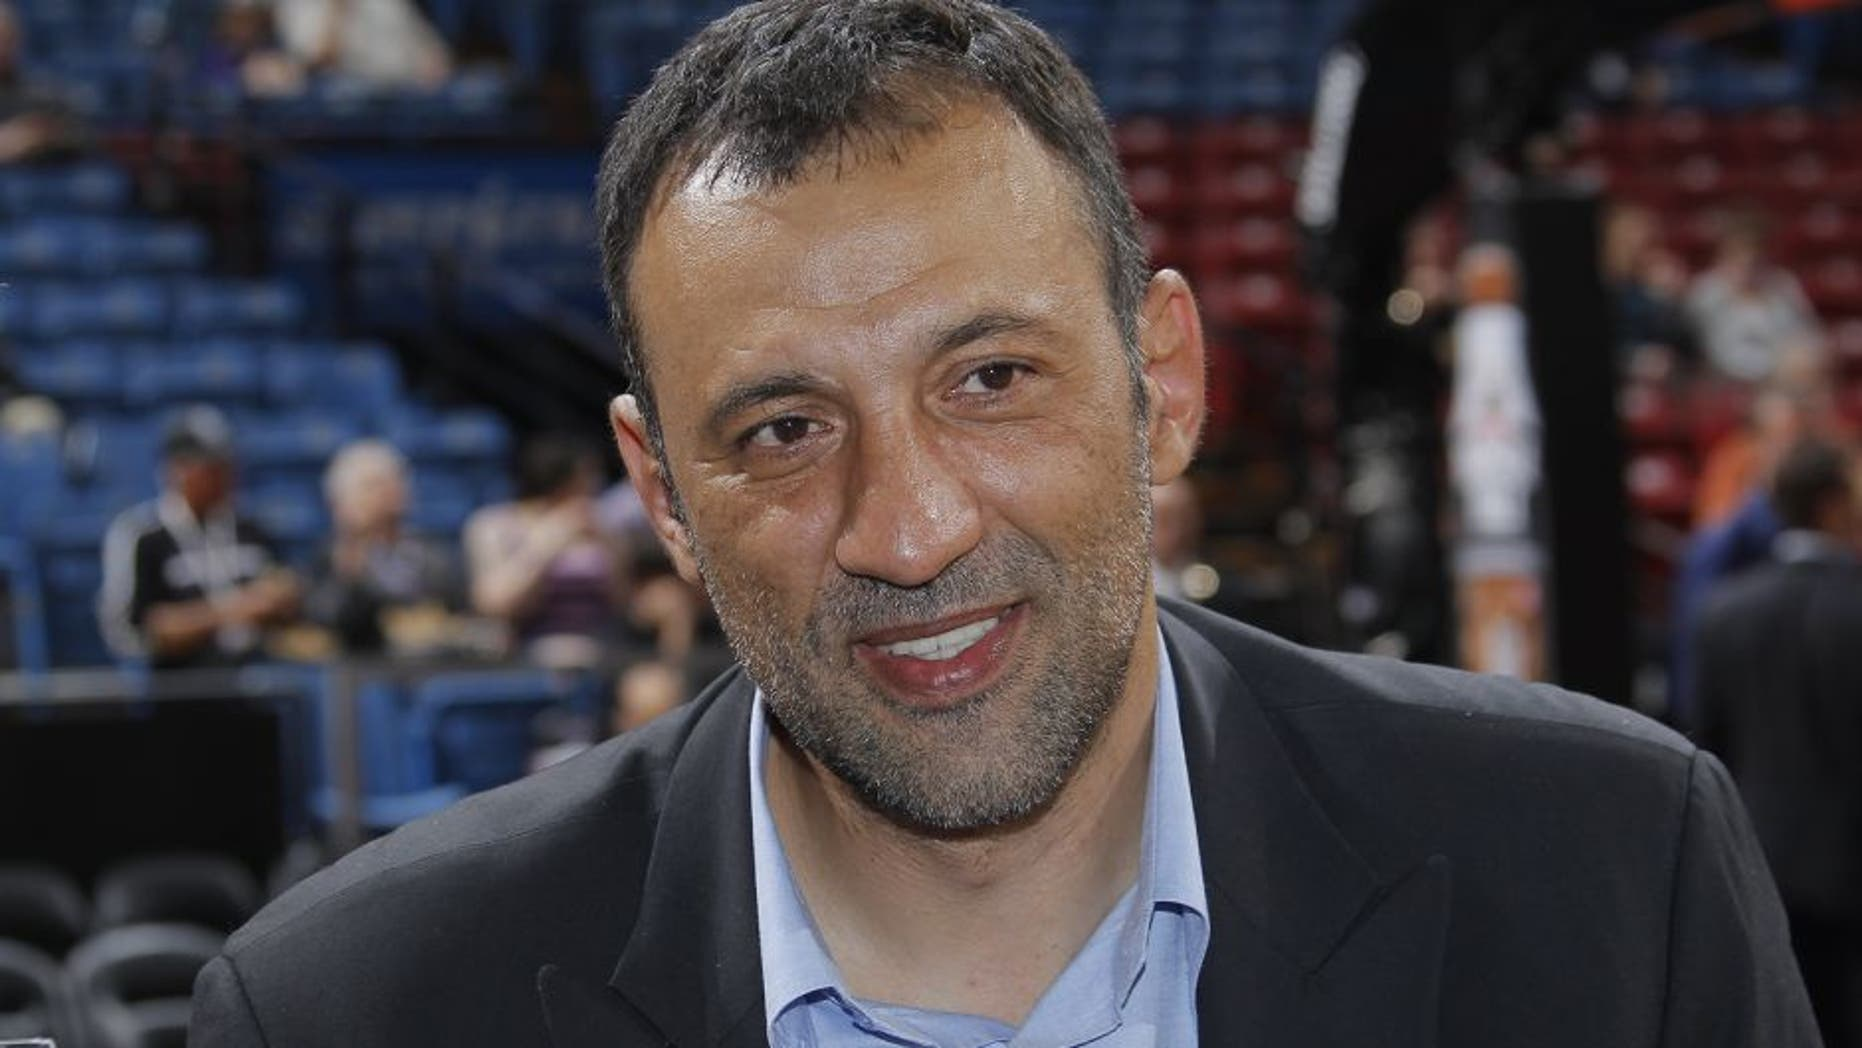 SACRAMENTO, CA - MARCH 21: Former Sacramento Kings Vlade Divac talks with the local media before the Sacramento Kings take on the San Antonio Spurs at Sleep Train Arena on March 21, 2014 in Sacramento, California. NOTE TO USER: User expressly acknowledges and agrees that, by downloading and or using this photograph, User is consenting to the terms and conditions of the Getty Images Agreement. Mandatory Copyright Notice: Copyright 2014 NBAE (Photo by Rocky Widner/NBAE via Getty Images)